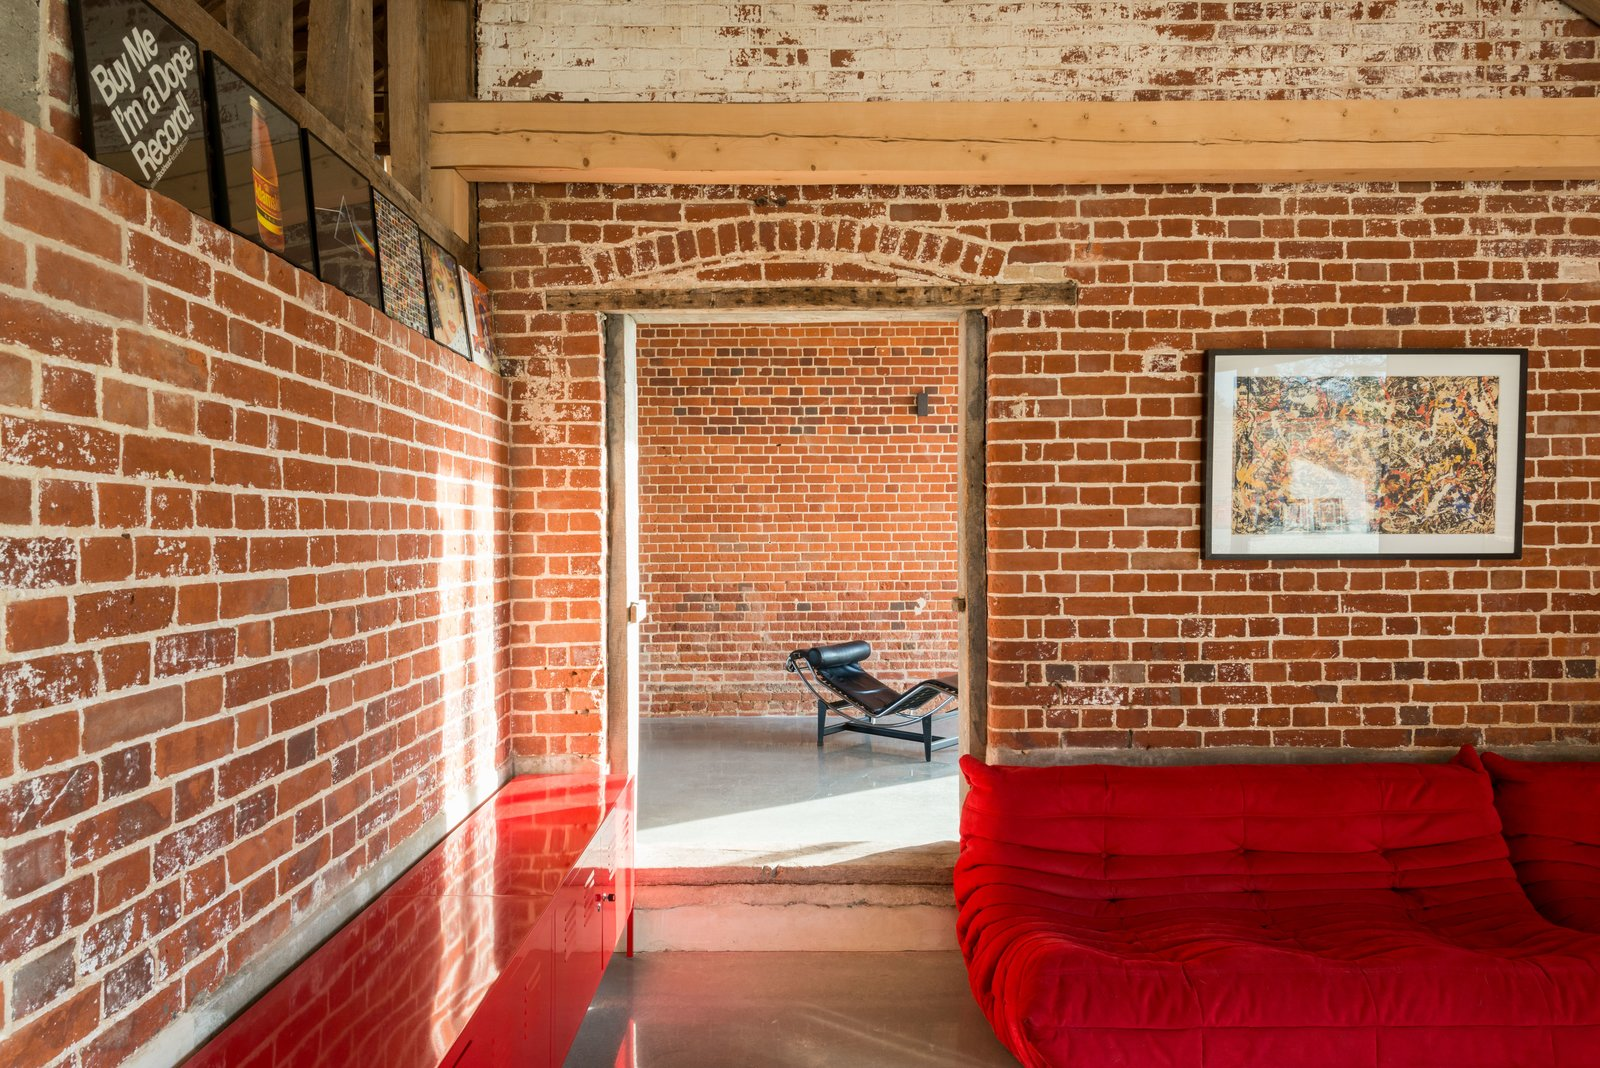 Living Room, Sectional, Chair, and Concrete Floor  Photo 9 of 10 in A Suffolk Barn Home With Soaring Ceilings Listed at $1.95M